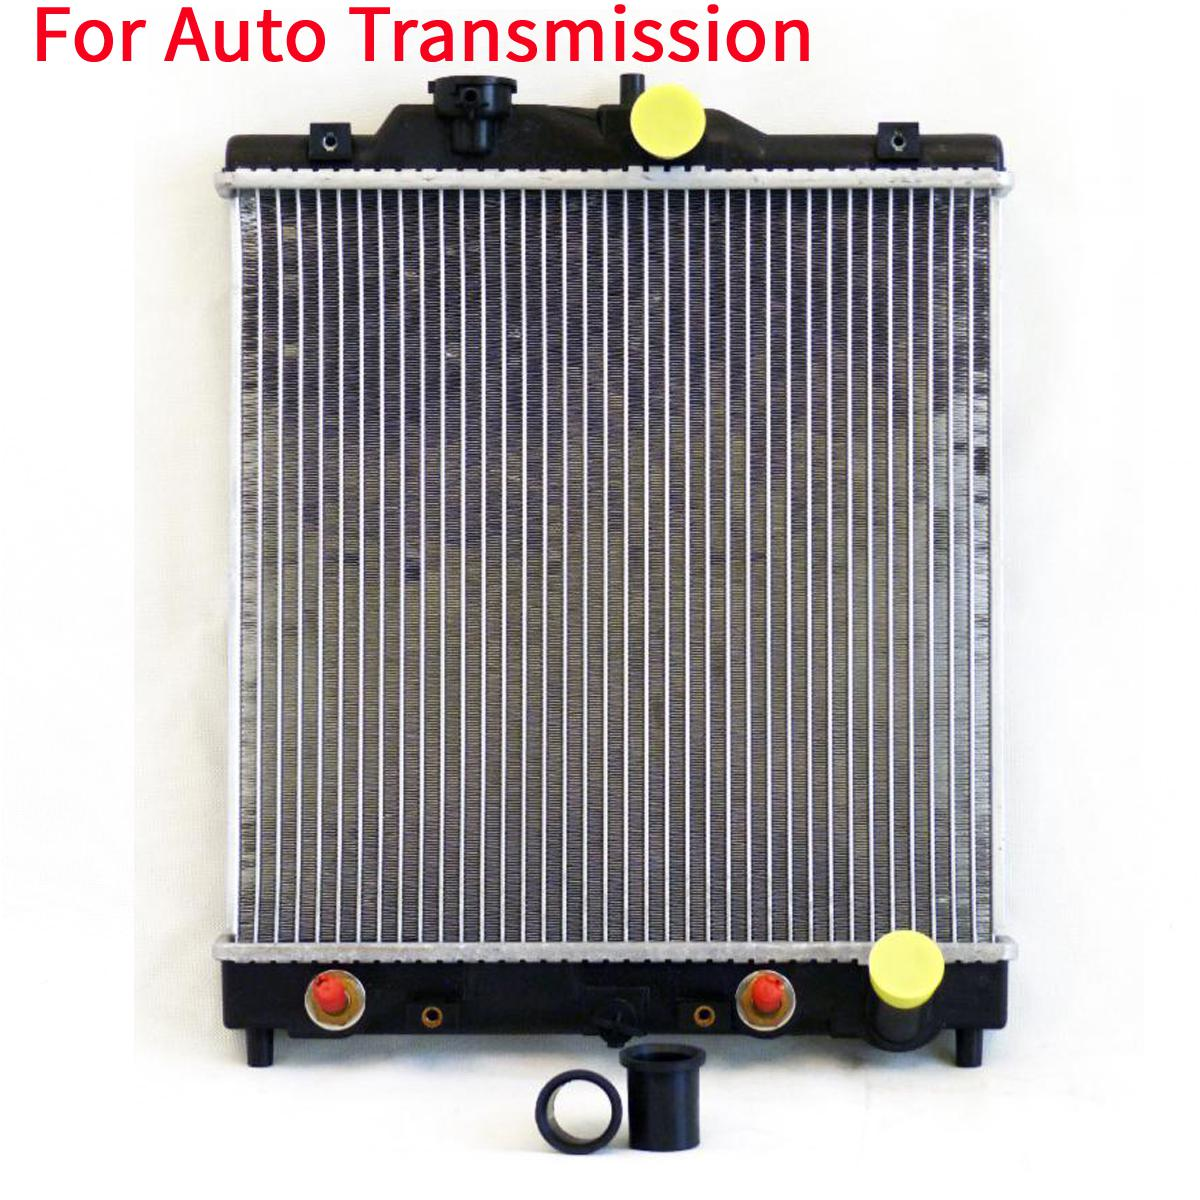 RADIATOR ONLY w//MANUNAL TRANSMISSION Fit 1992-2000 HONDA CIVIC 1.5 1.6 L4  M//T